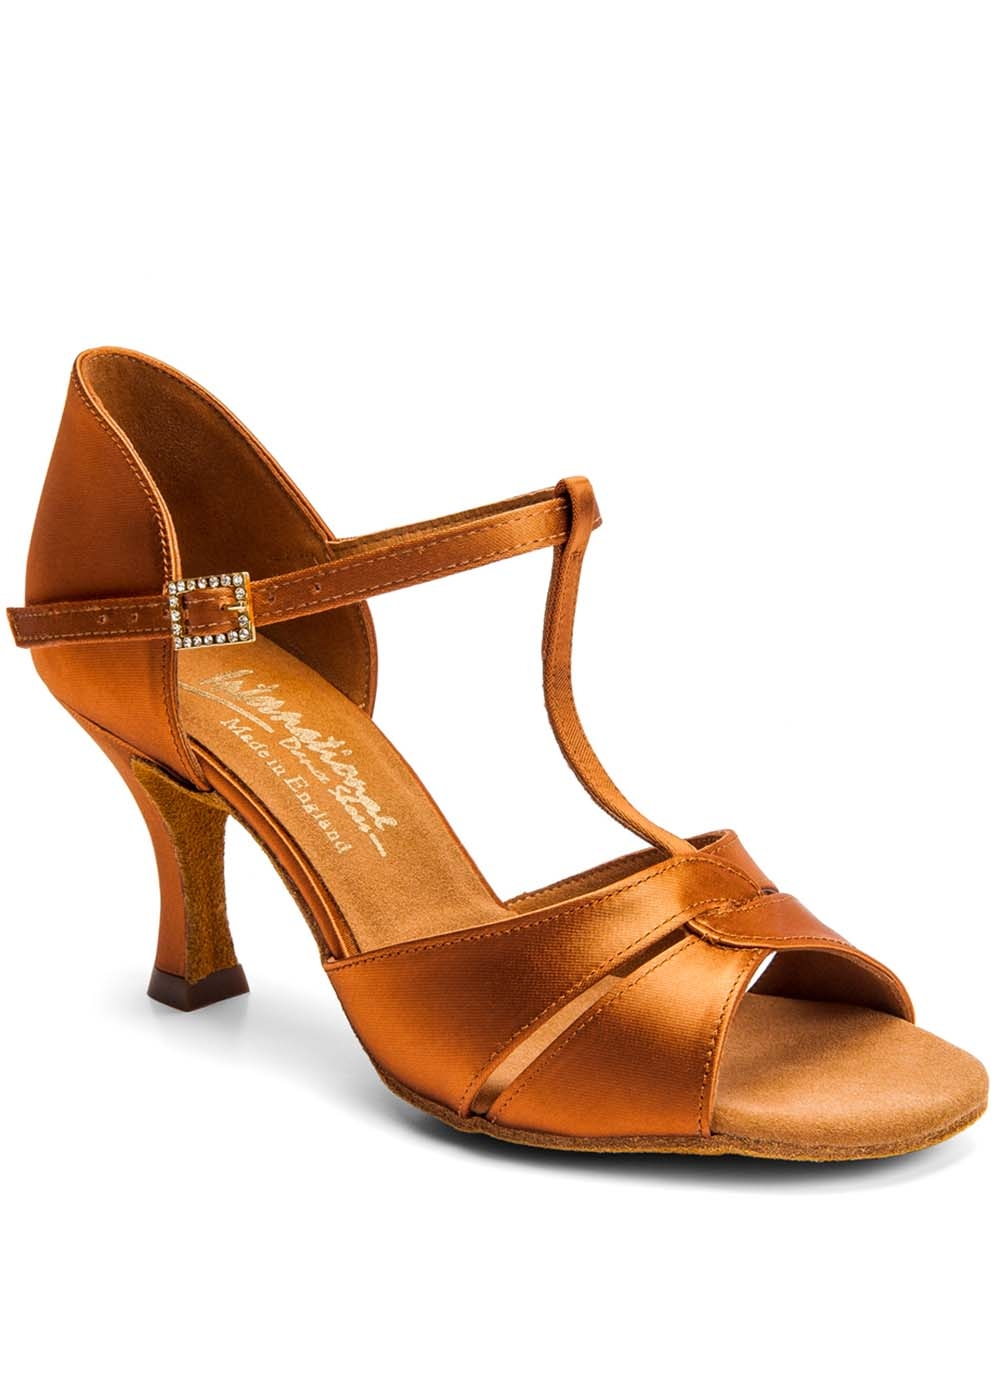 b776e978fd Women's Latin Shoes, International Dance Shoes, Style 1018, $155.00, from  VEdance, the very best in ballroom and Latin dance shoes and dancewear.